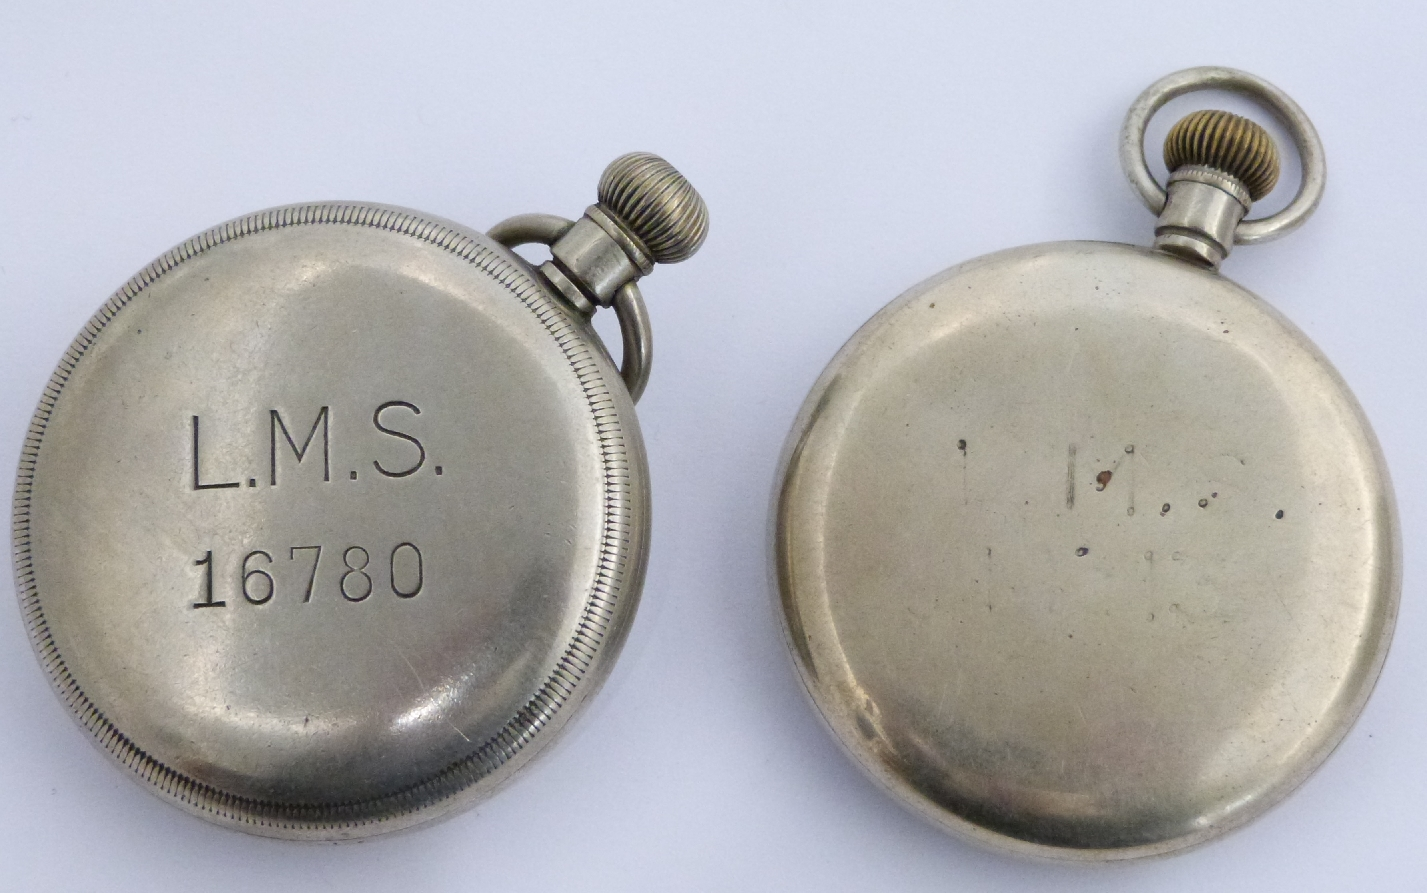 Lot 38 - Two London Midland and Scottish railway Limit keyless winding open faced pocket watches, each with